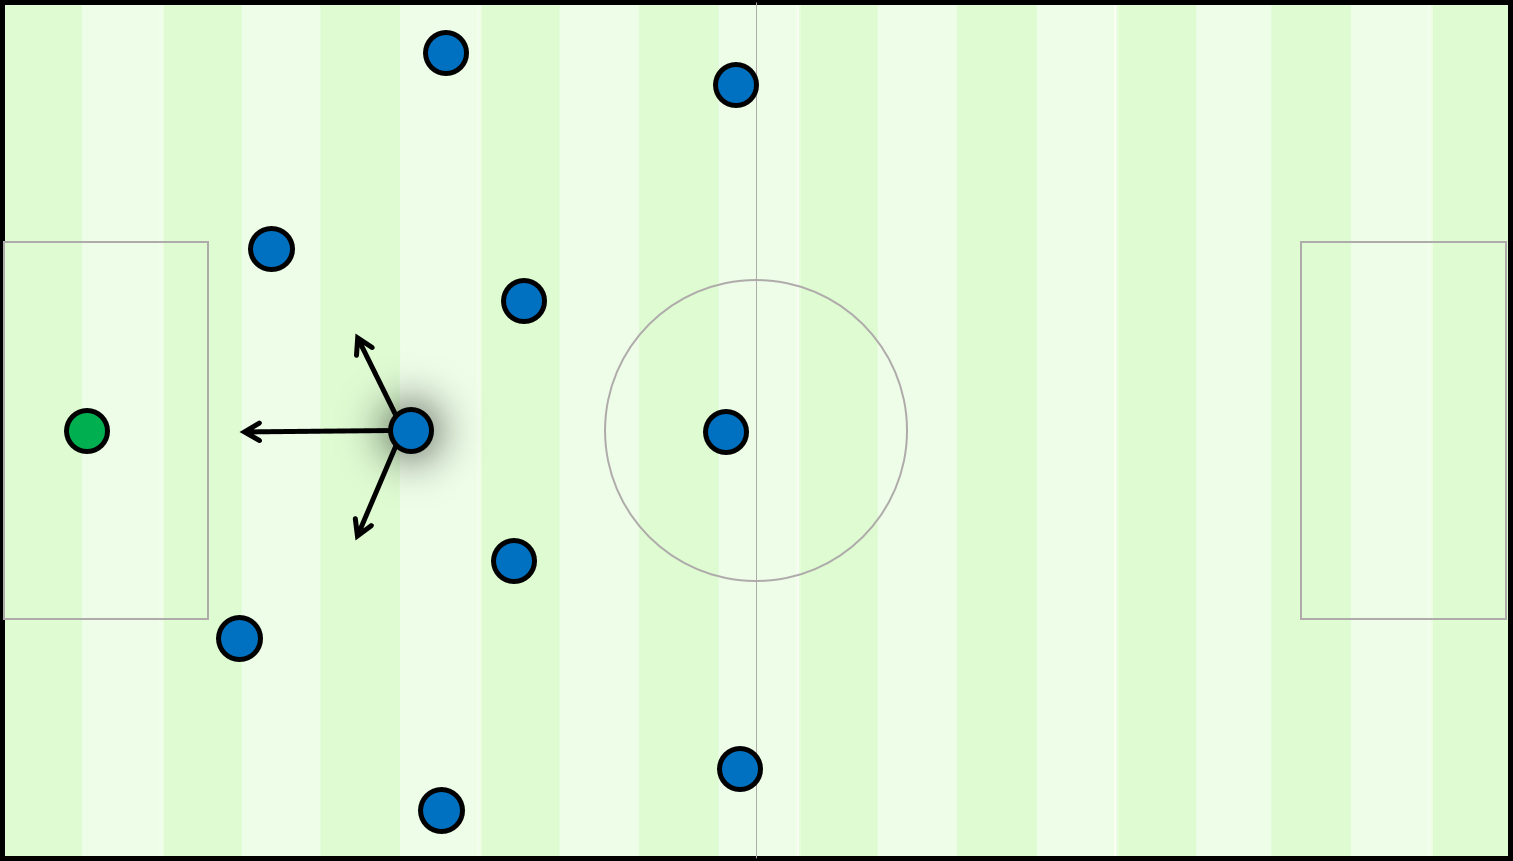 Sergio Busquets starting position in the build up is highlighted here, with his typical movement depicted by the arrows